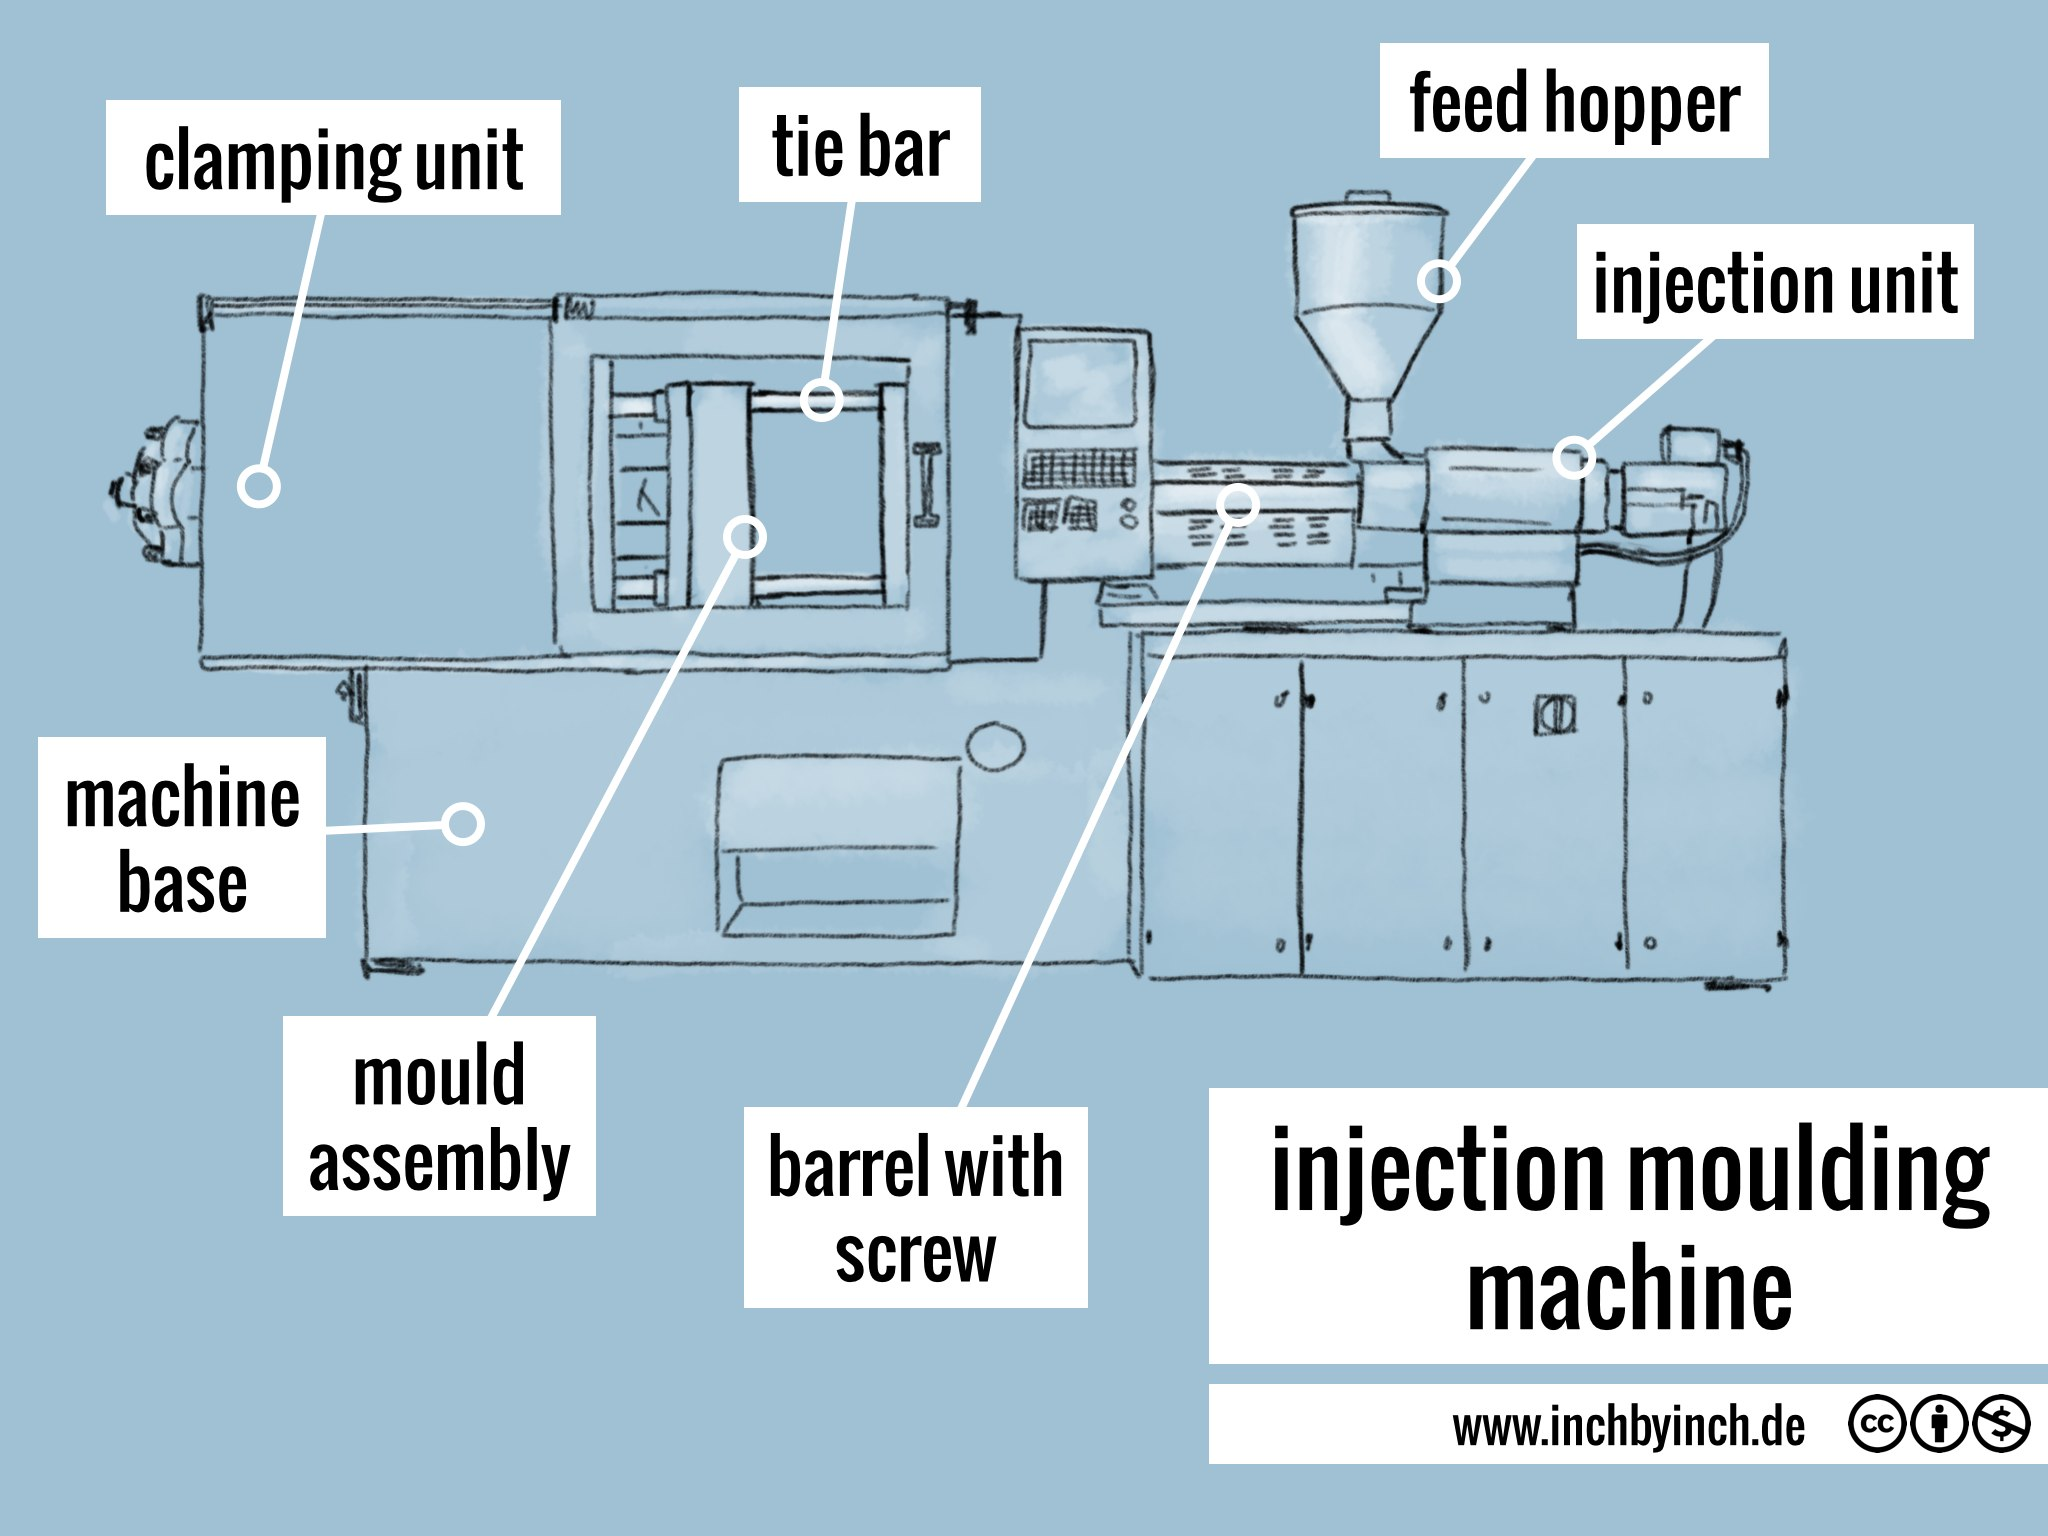 injectionmoulding machine